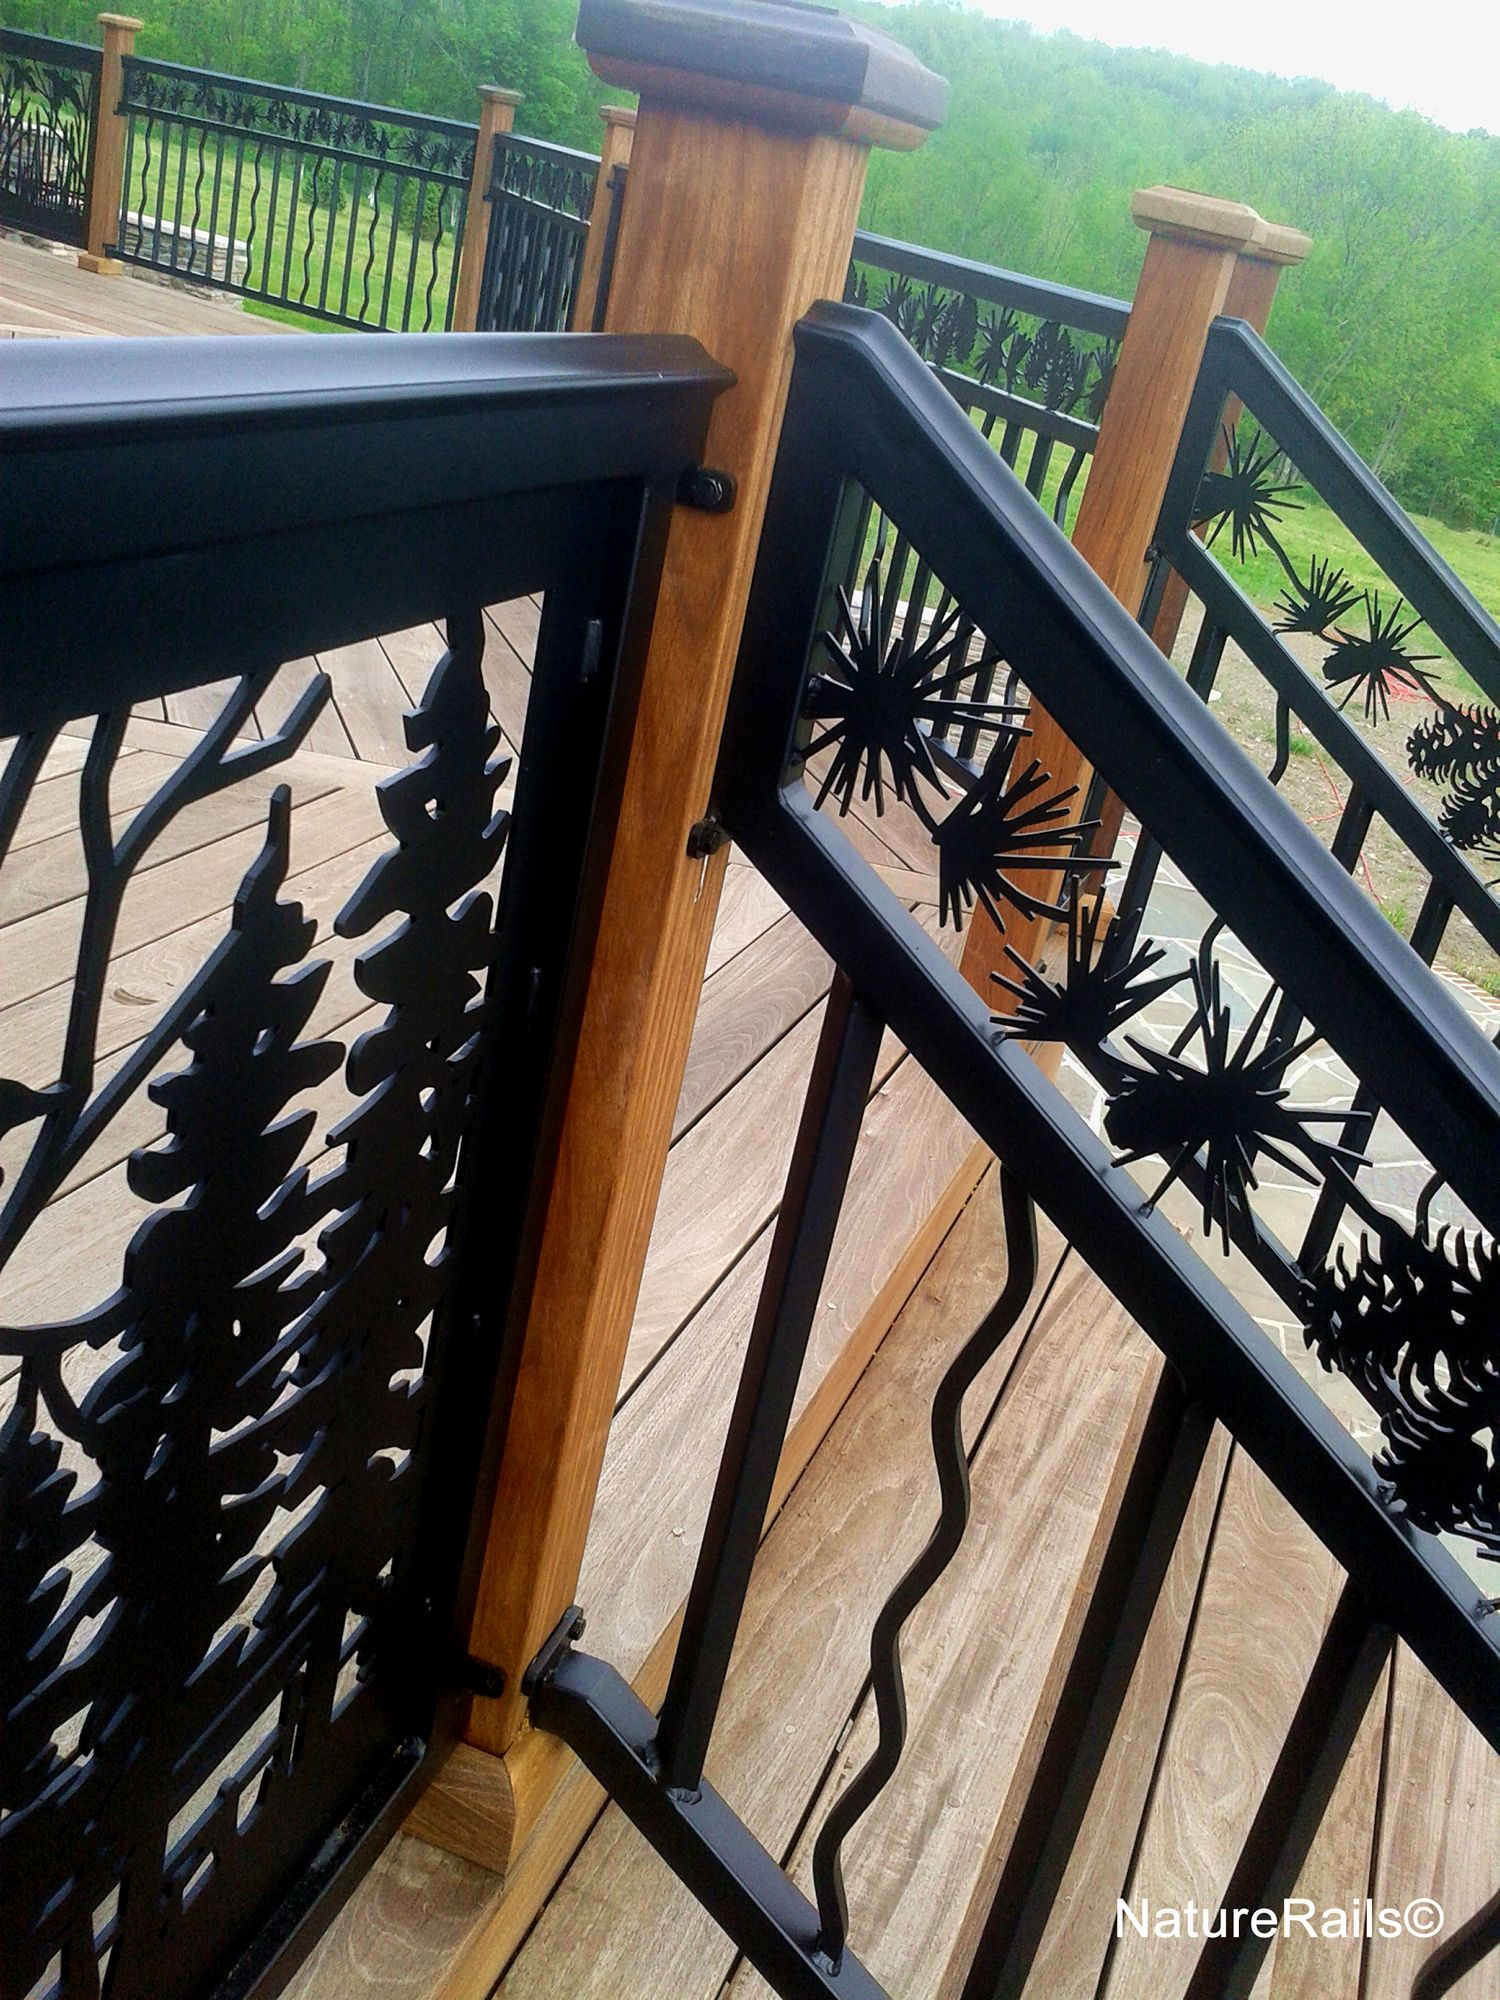 Best Custom Deck Railings With Pine Cone Border By Naturerails Durable Powder Coated Steel Or 640 x 480